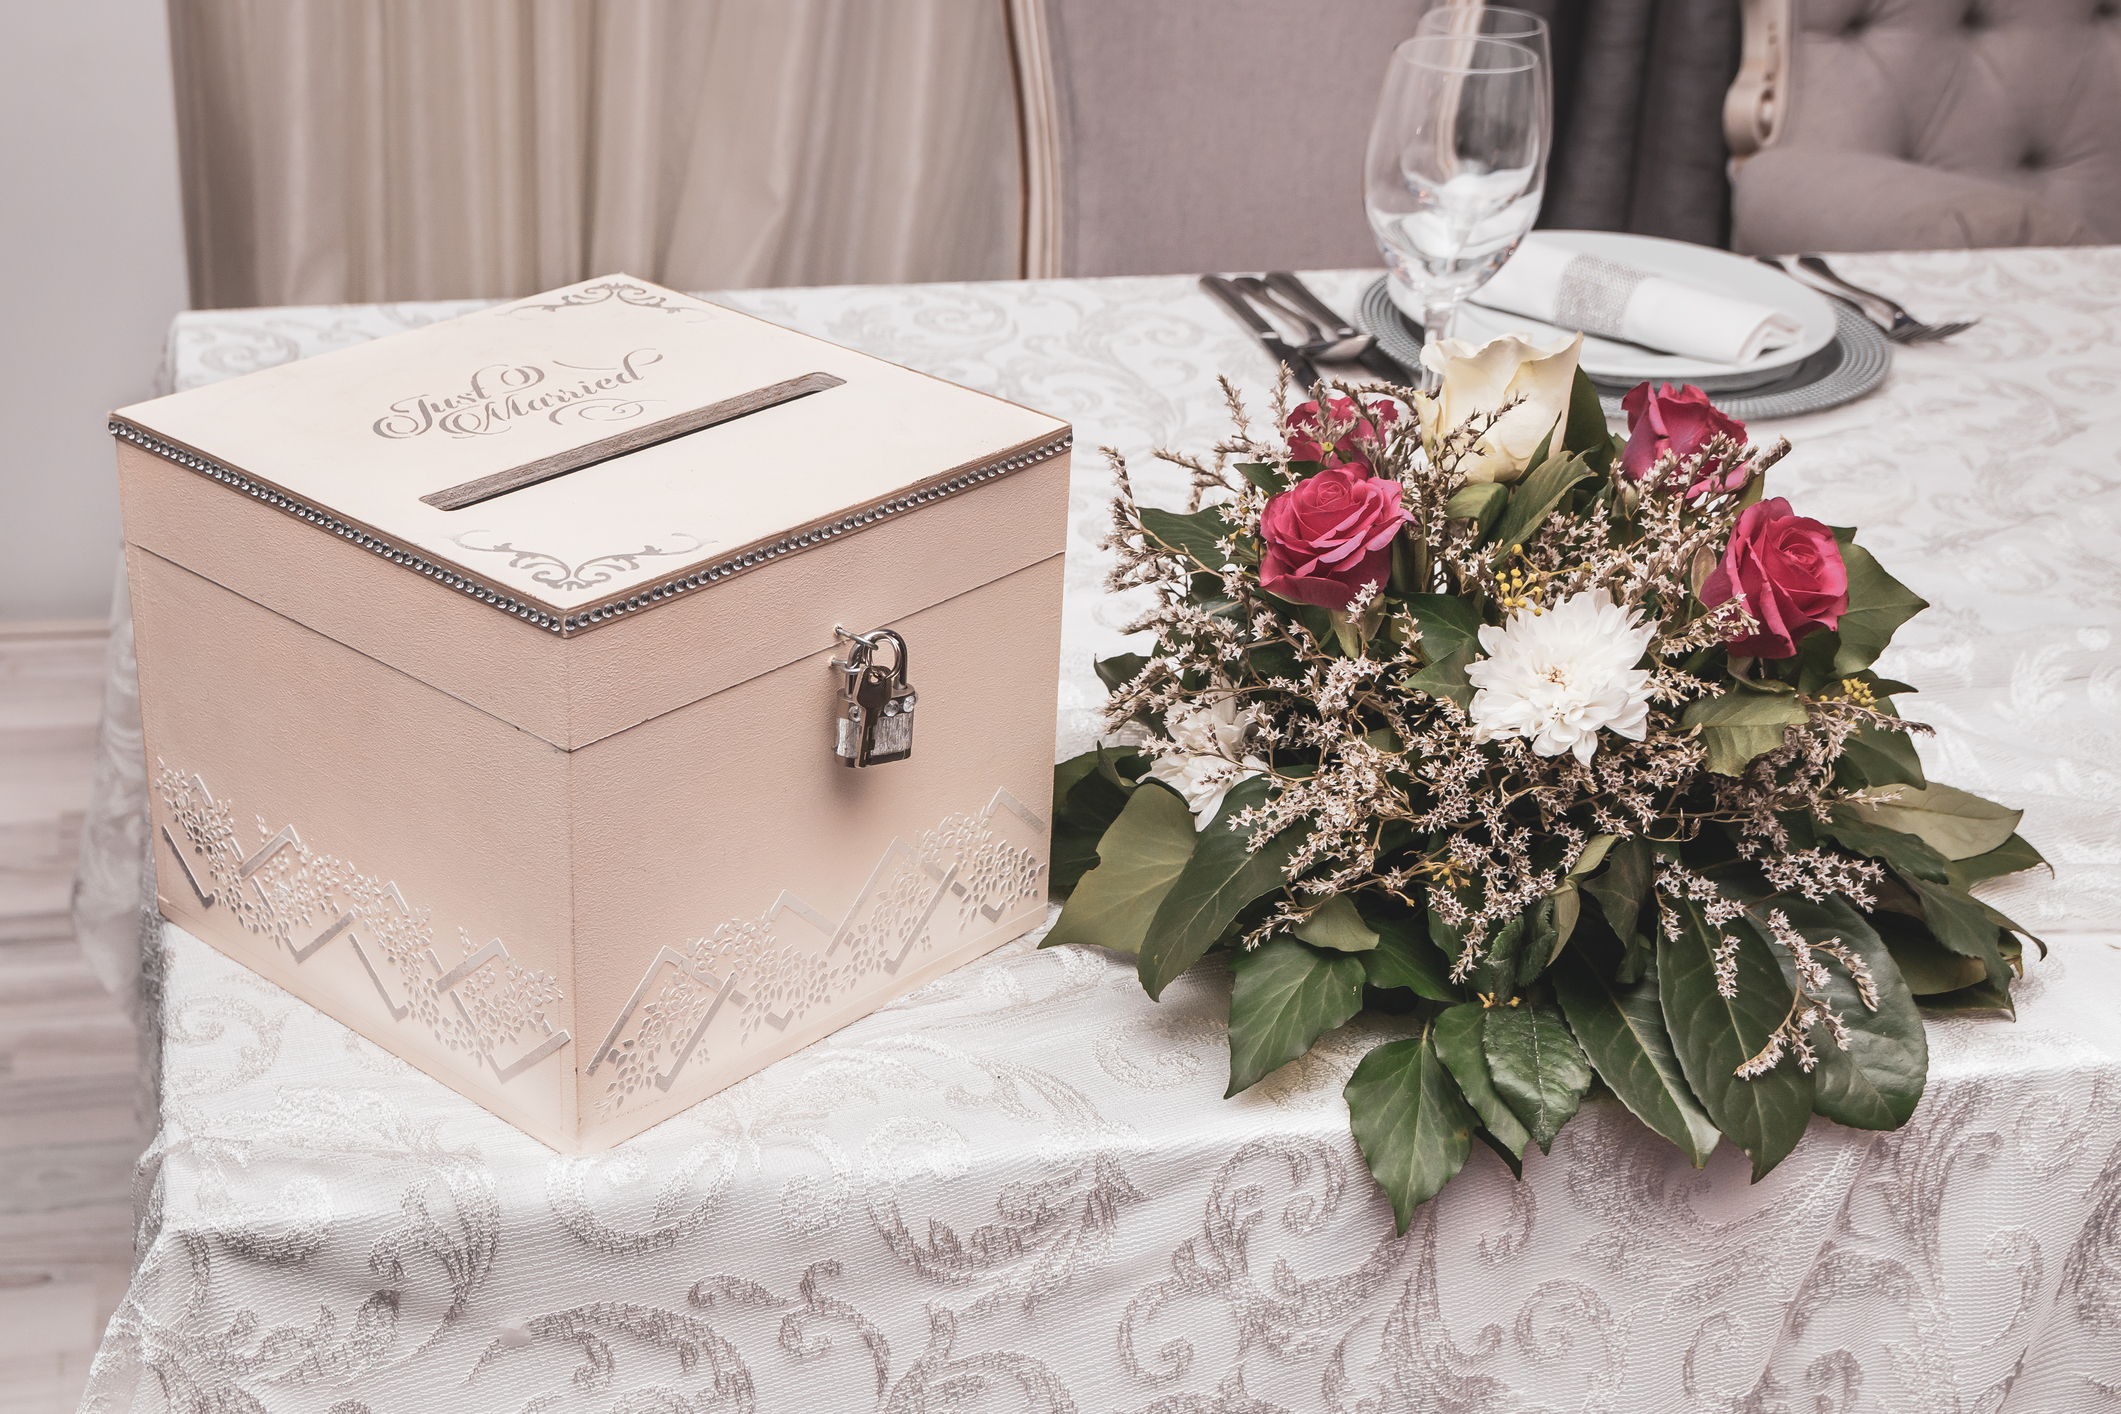 box for gifts cards and or money at a reception